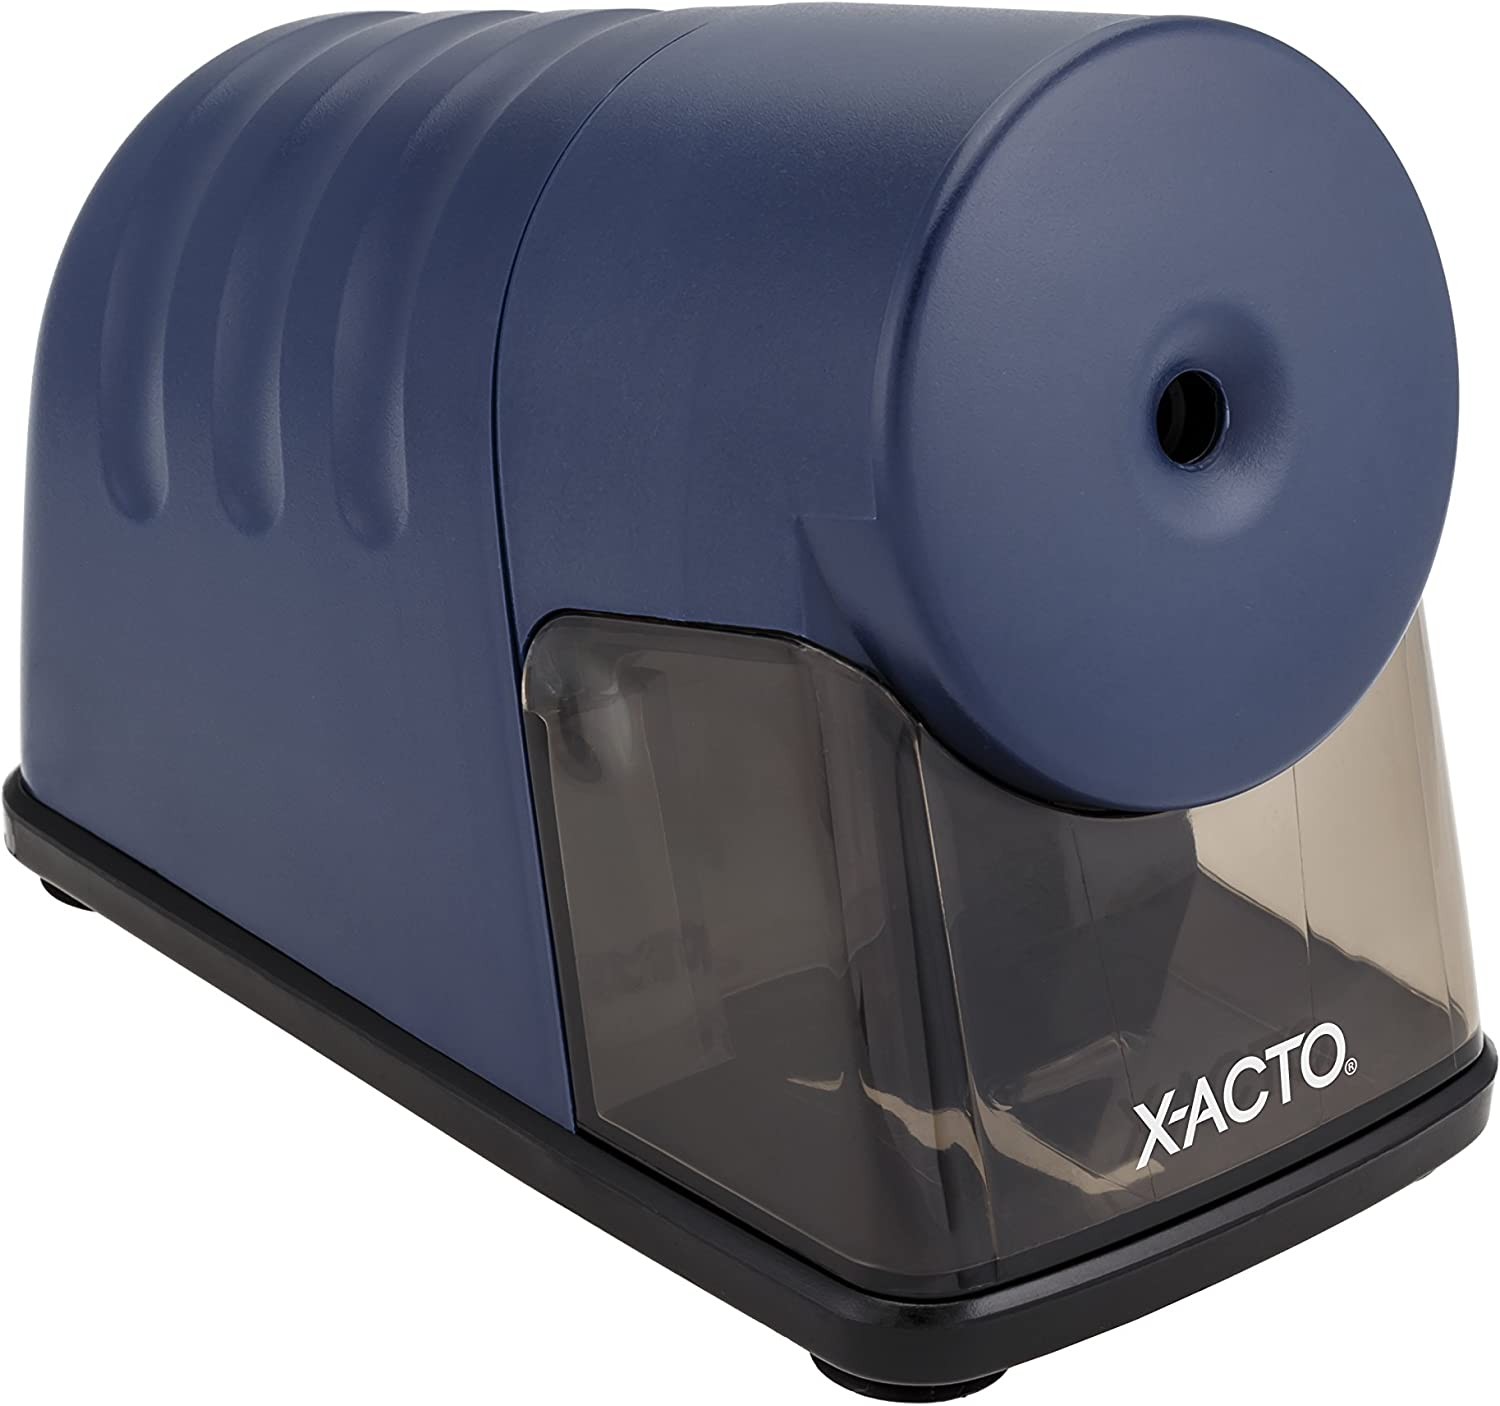 X-ACTO Powerhouse Electric Pencil Now free shipping online shop Blue Sharpener Navy